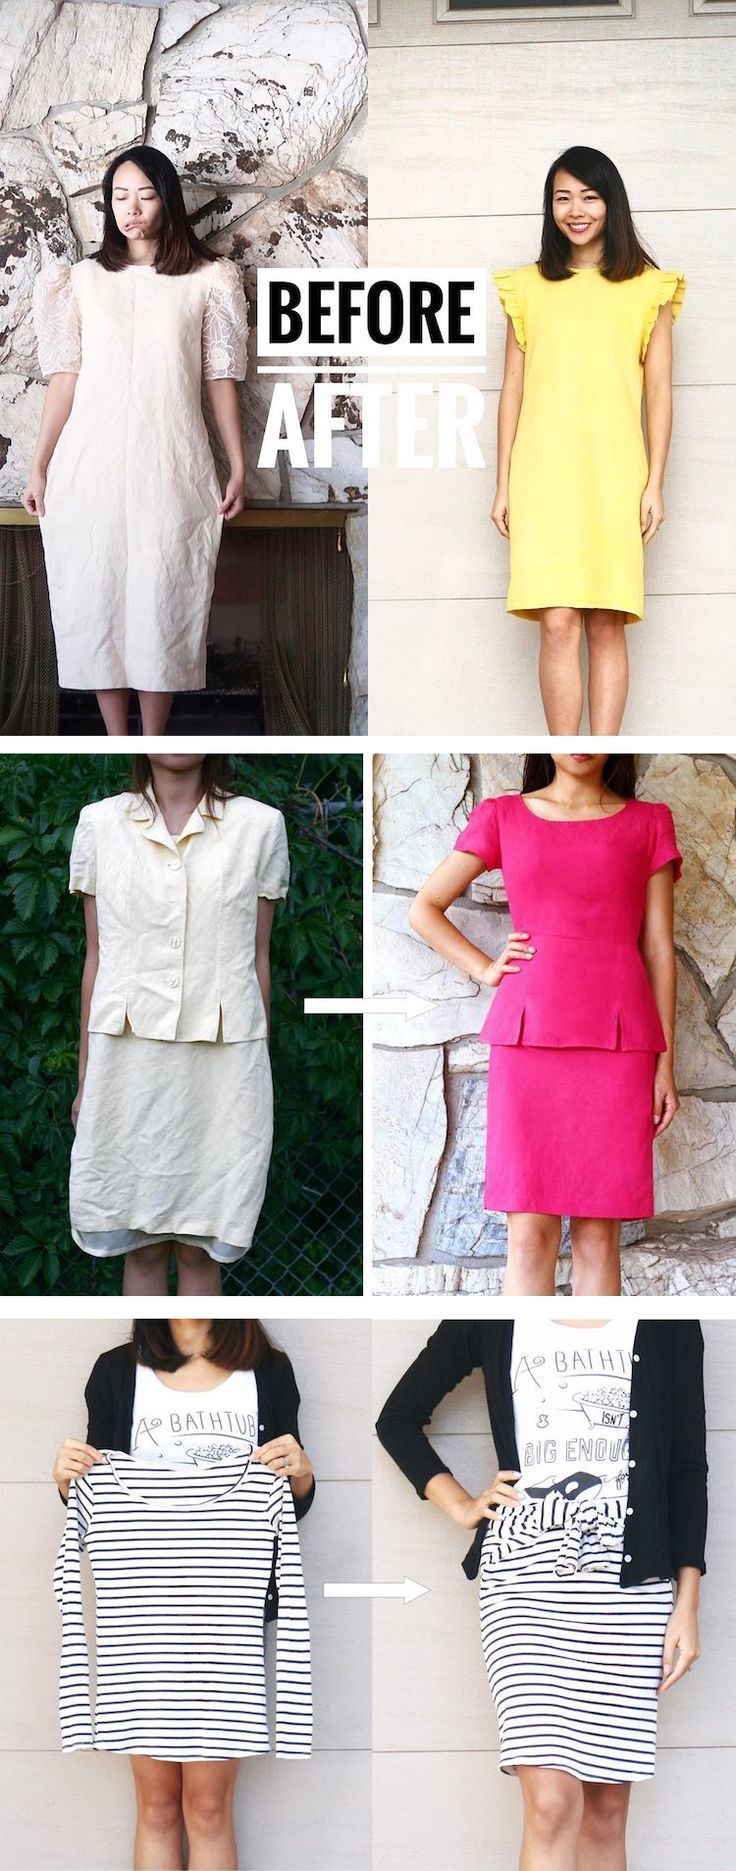 DIY mom Sarah Tyau has a knack for refashioning clothes // thrift store refashioning // upcycled clothing